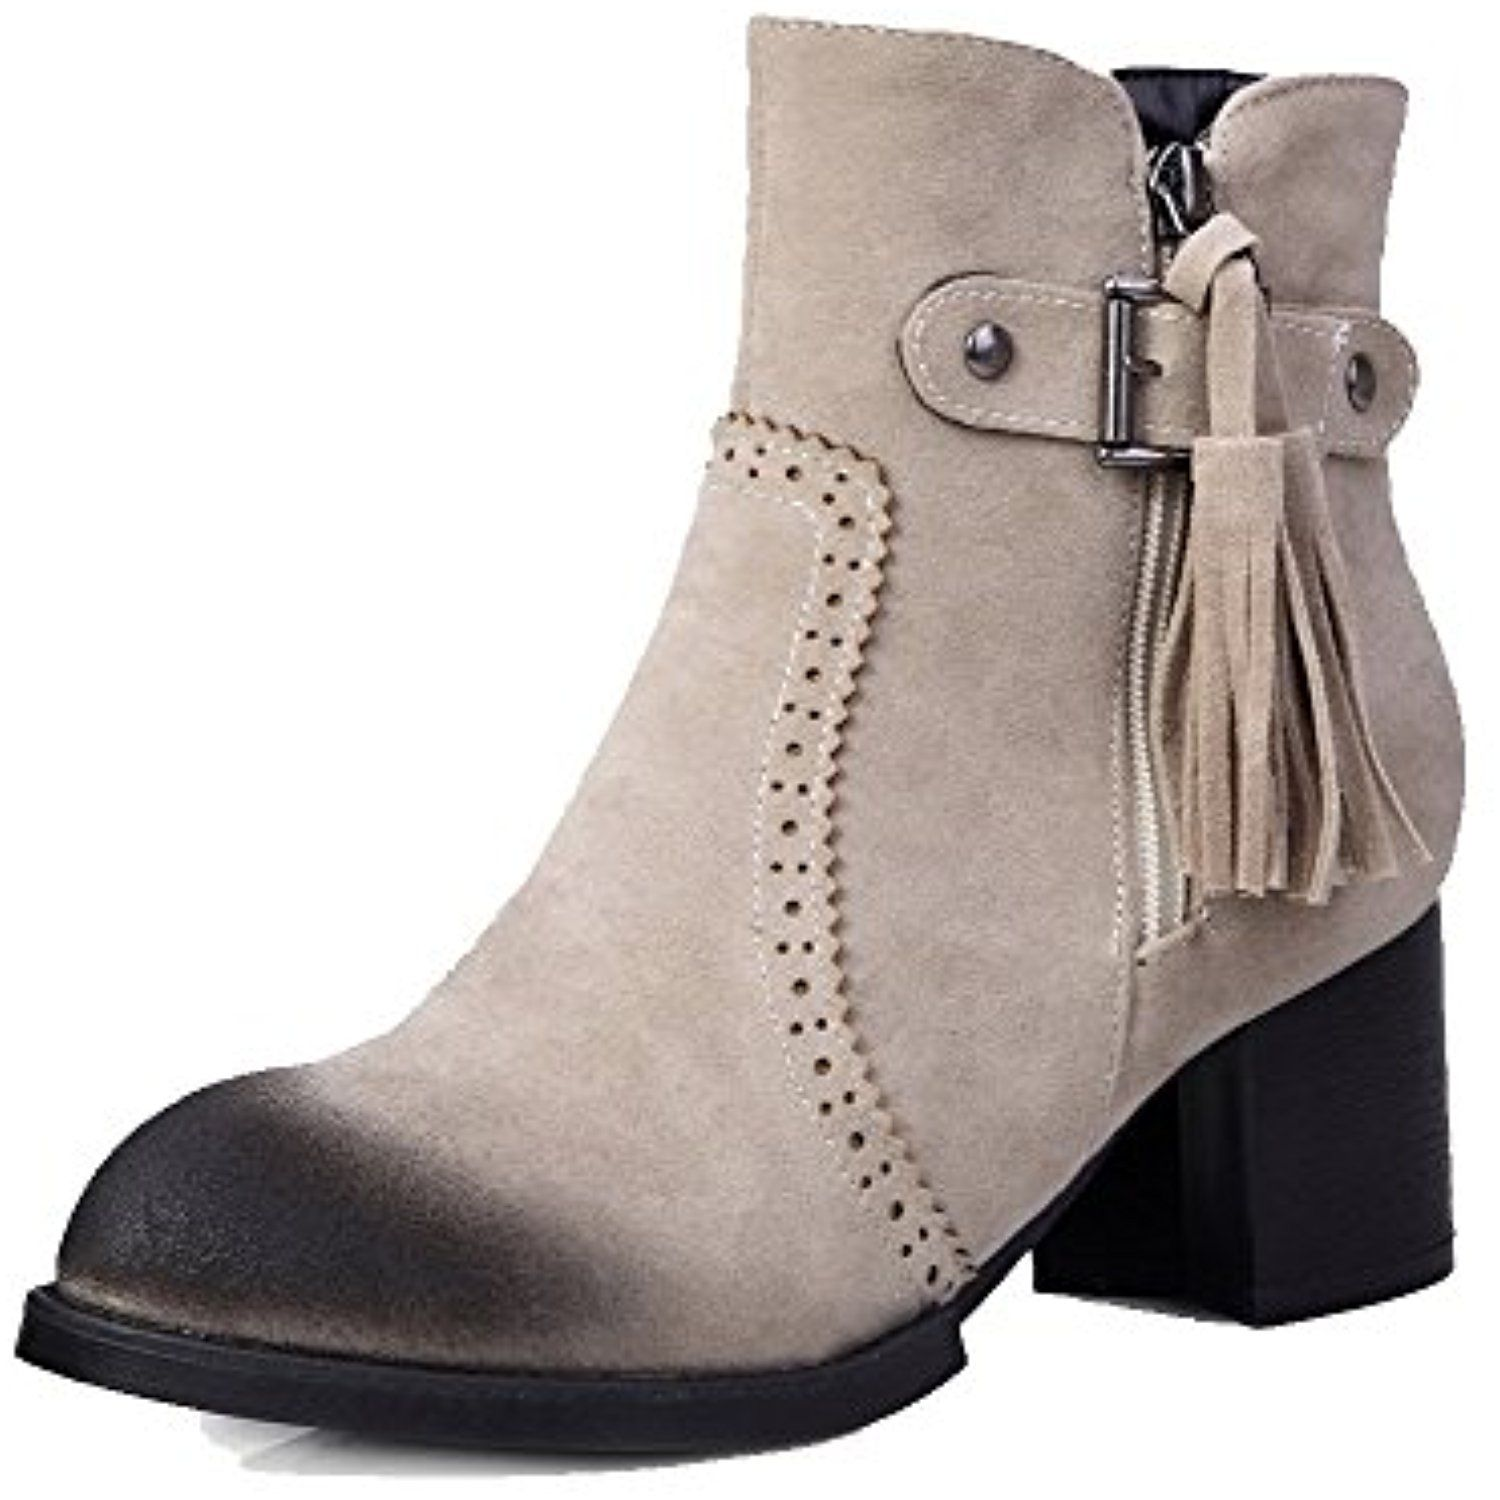 Women's Kitten-Heels Solid Round Closed Toe Frosted Zipper Boots